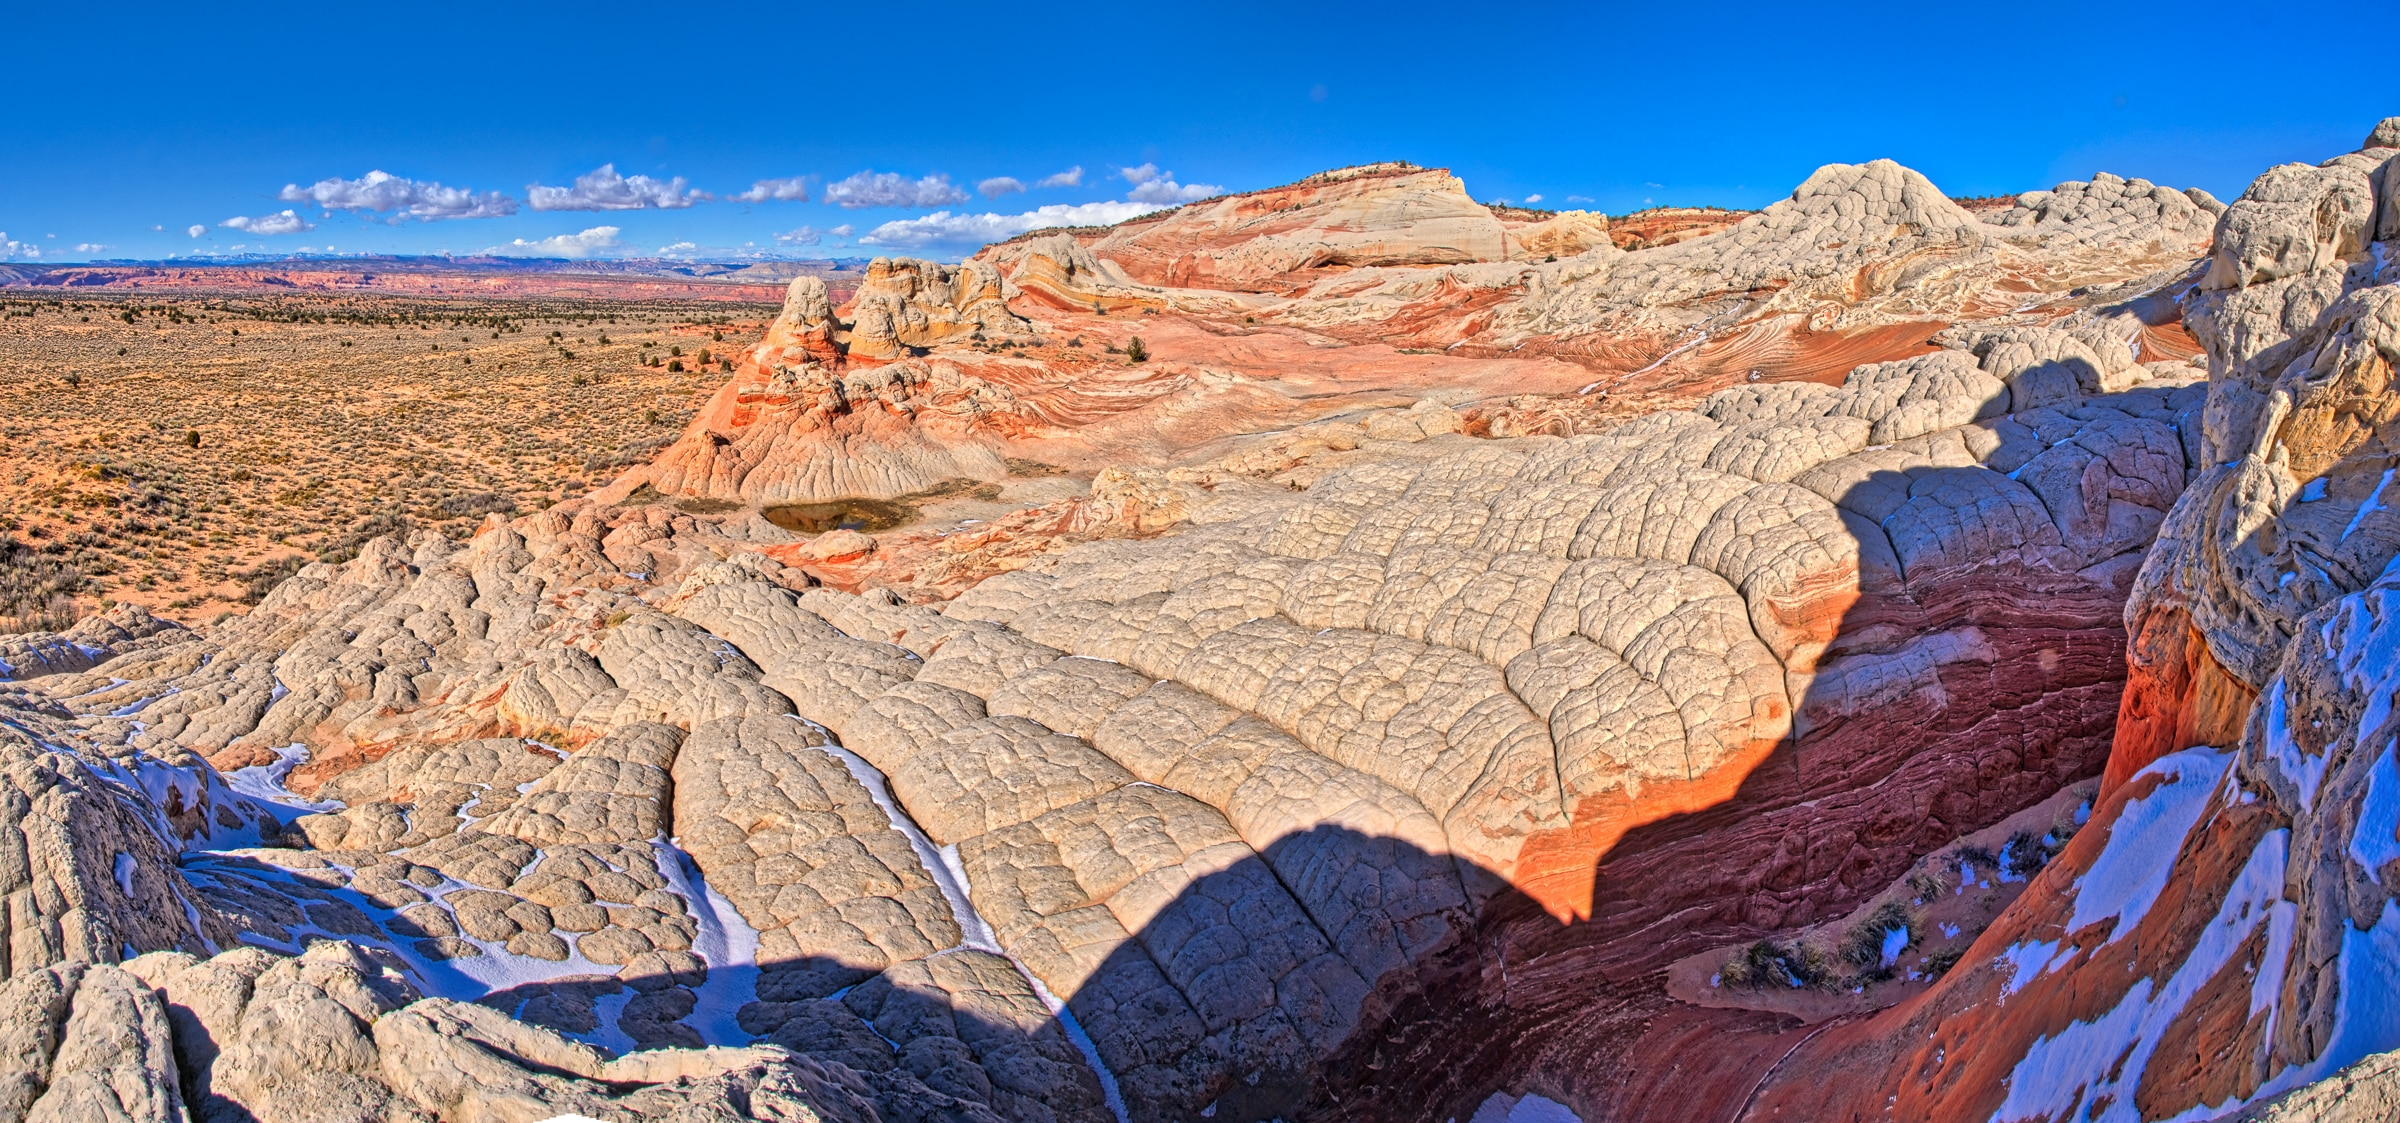 This panoramic view shows the Navajo Sandstone brain rock and the brilliant red swirls in Vermillion Cliffs National Monument.